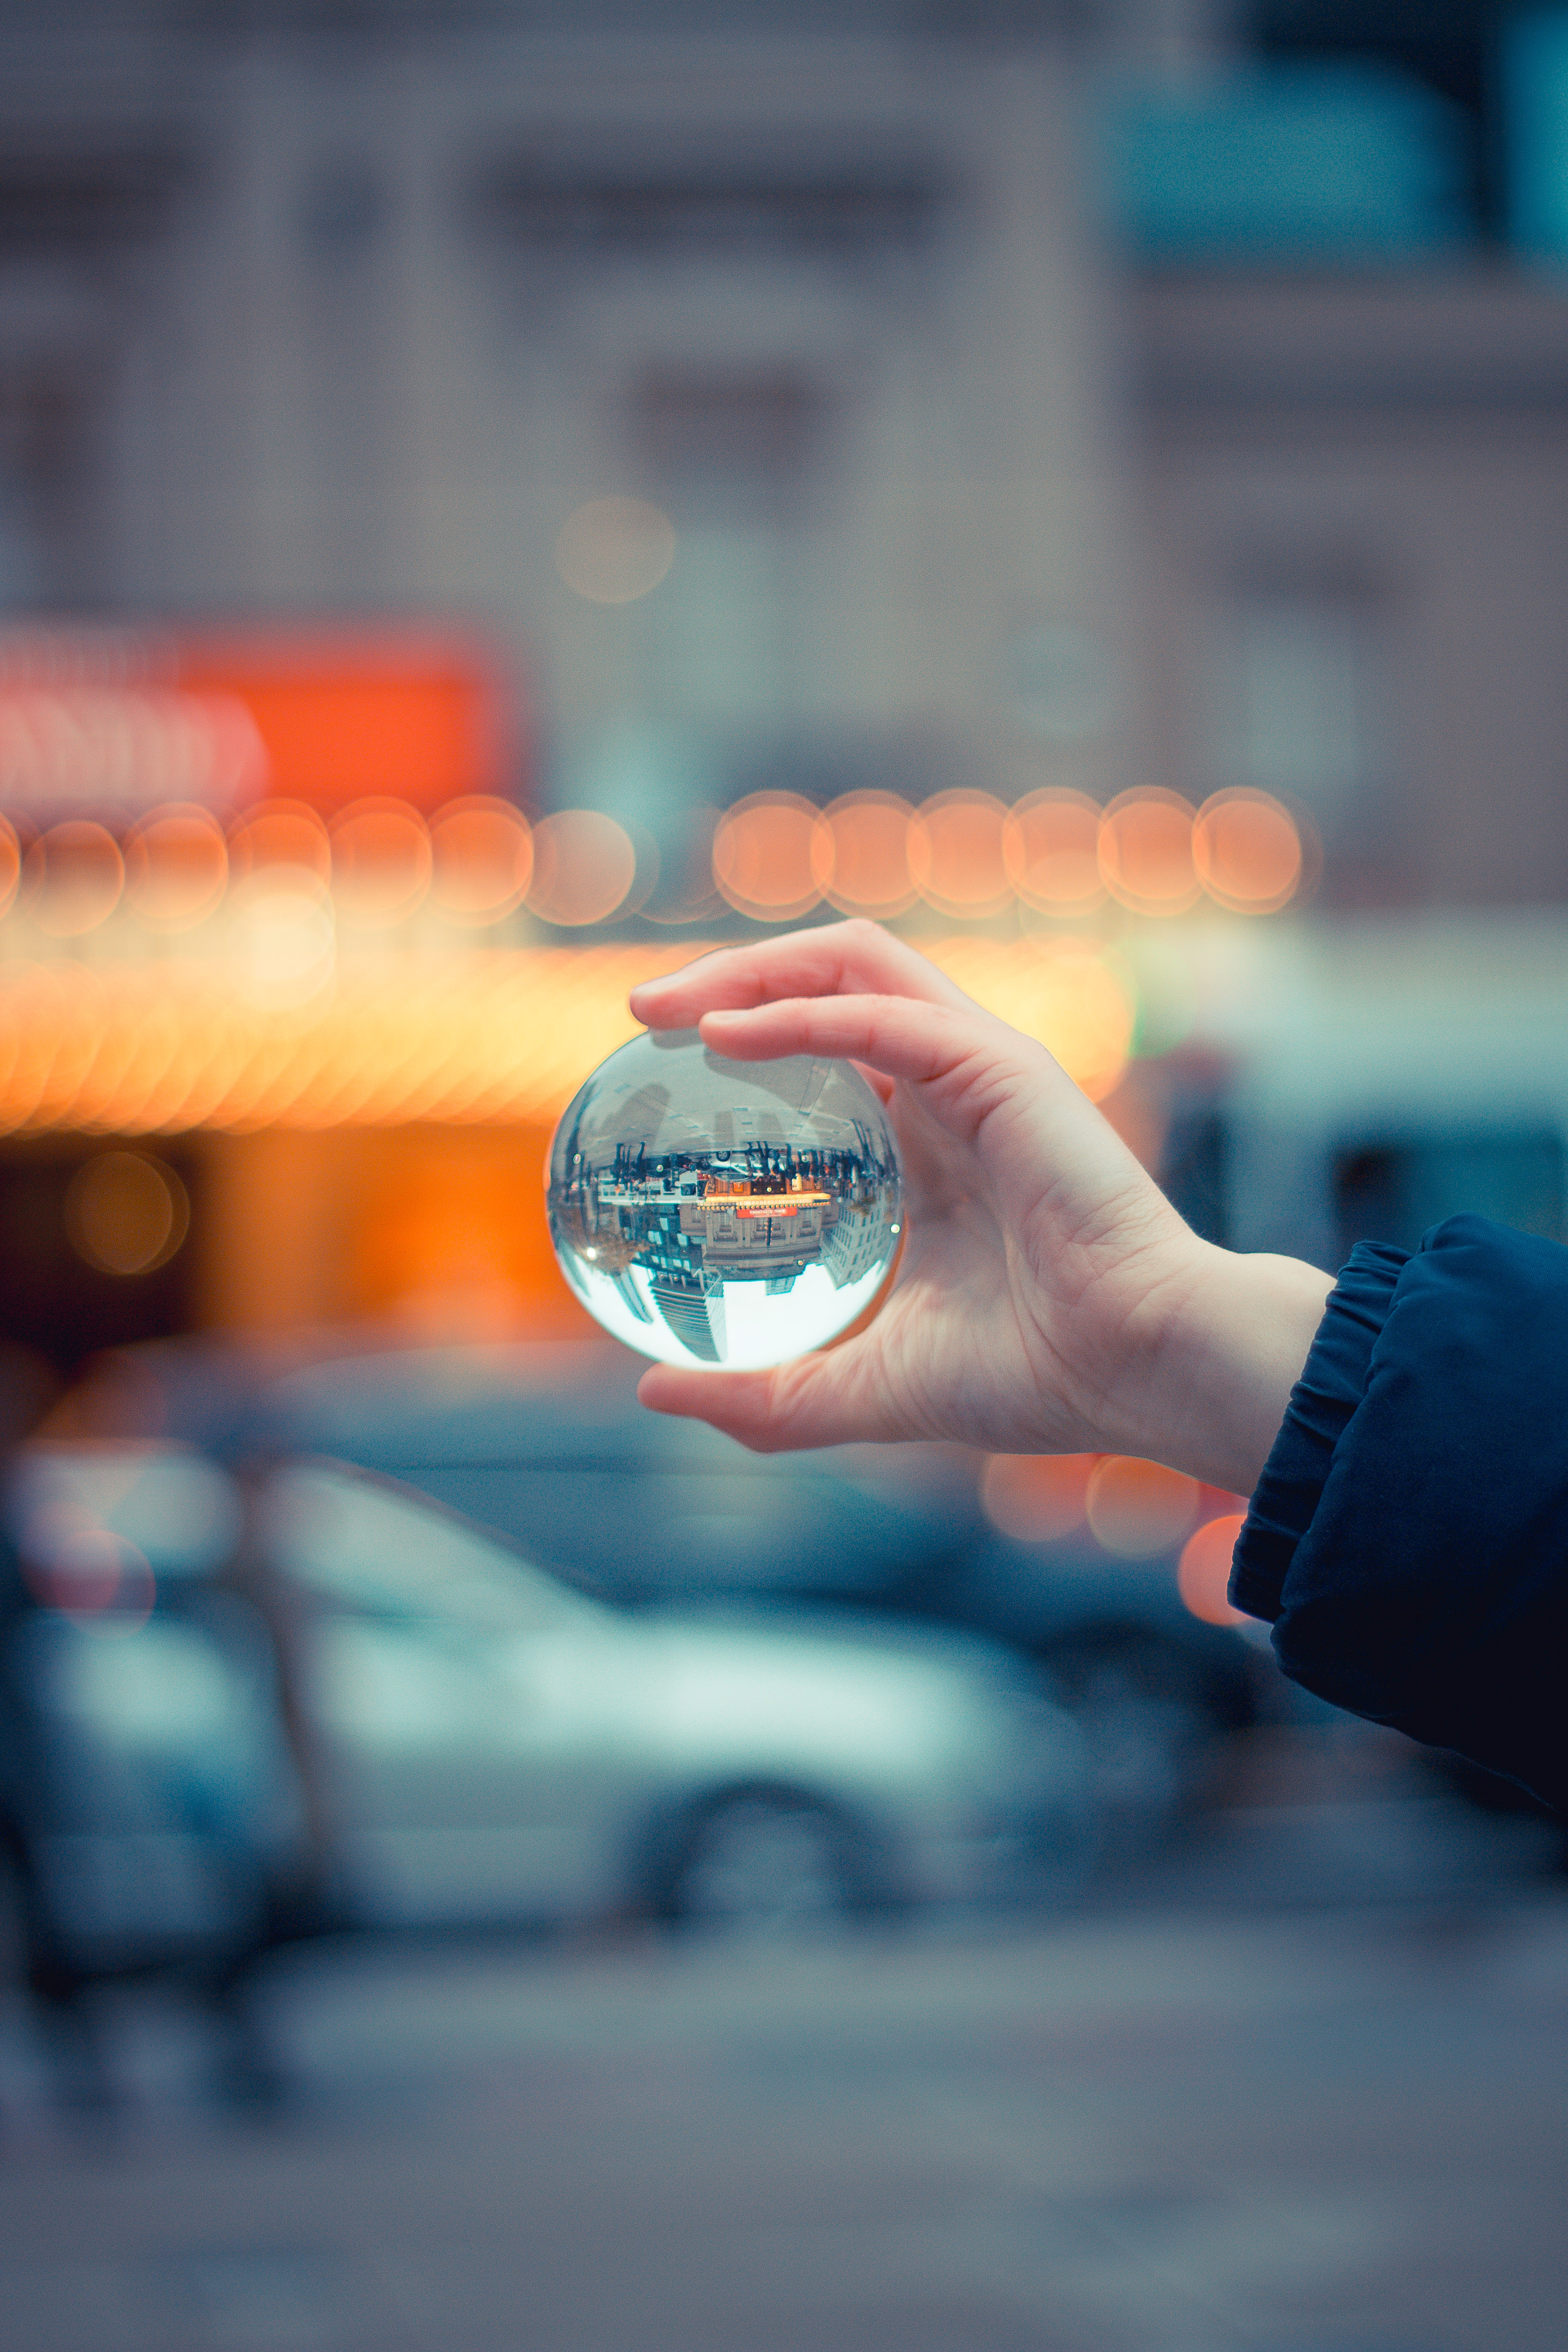 Person Holding Round Glass Ball Macro Shot, Action, Light, Travel, Transportation system, HQ Photo